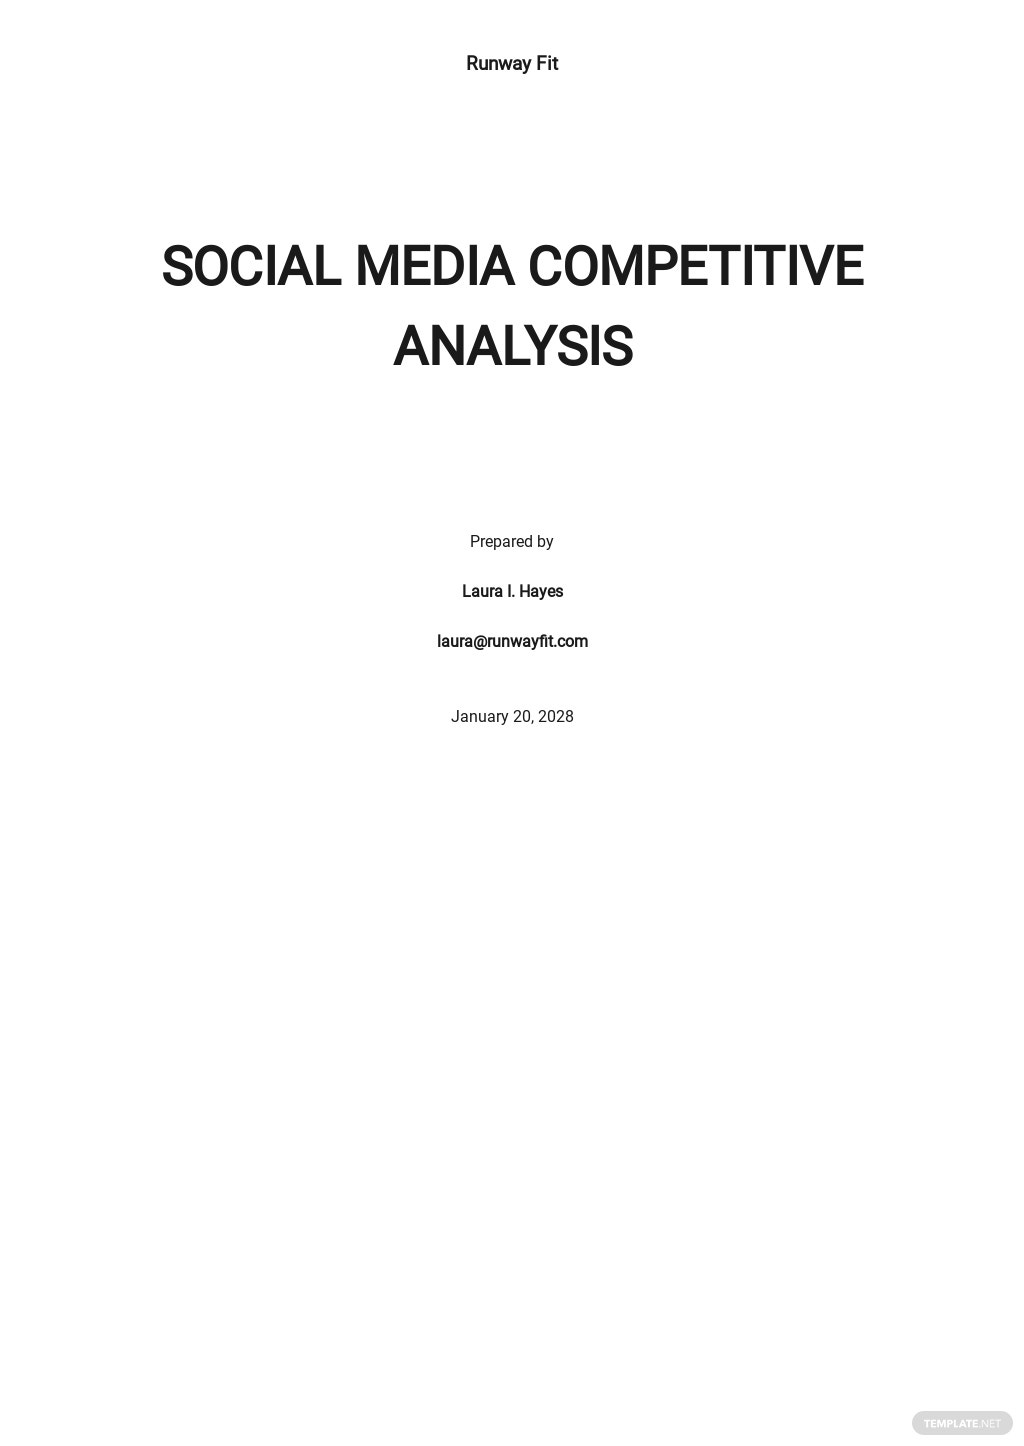 Social Media Competitive Analysis Template.jpe